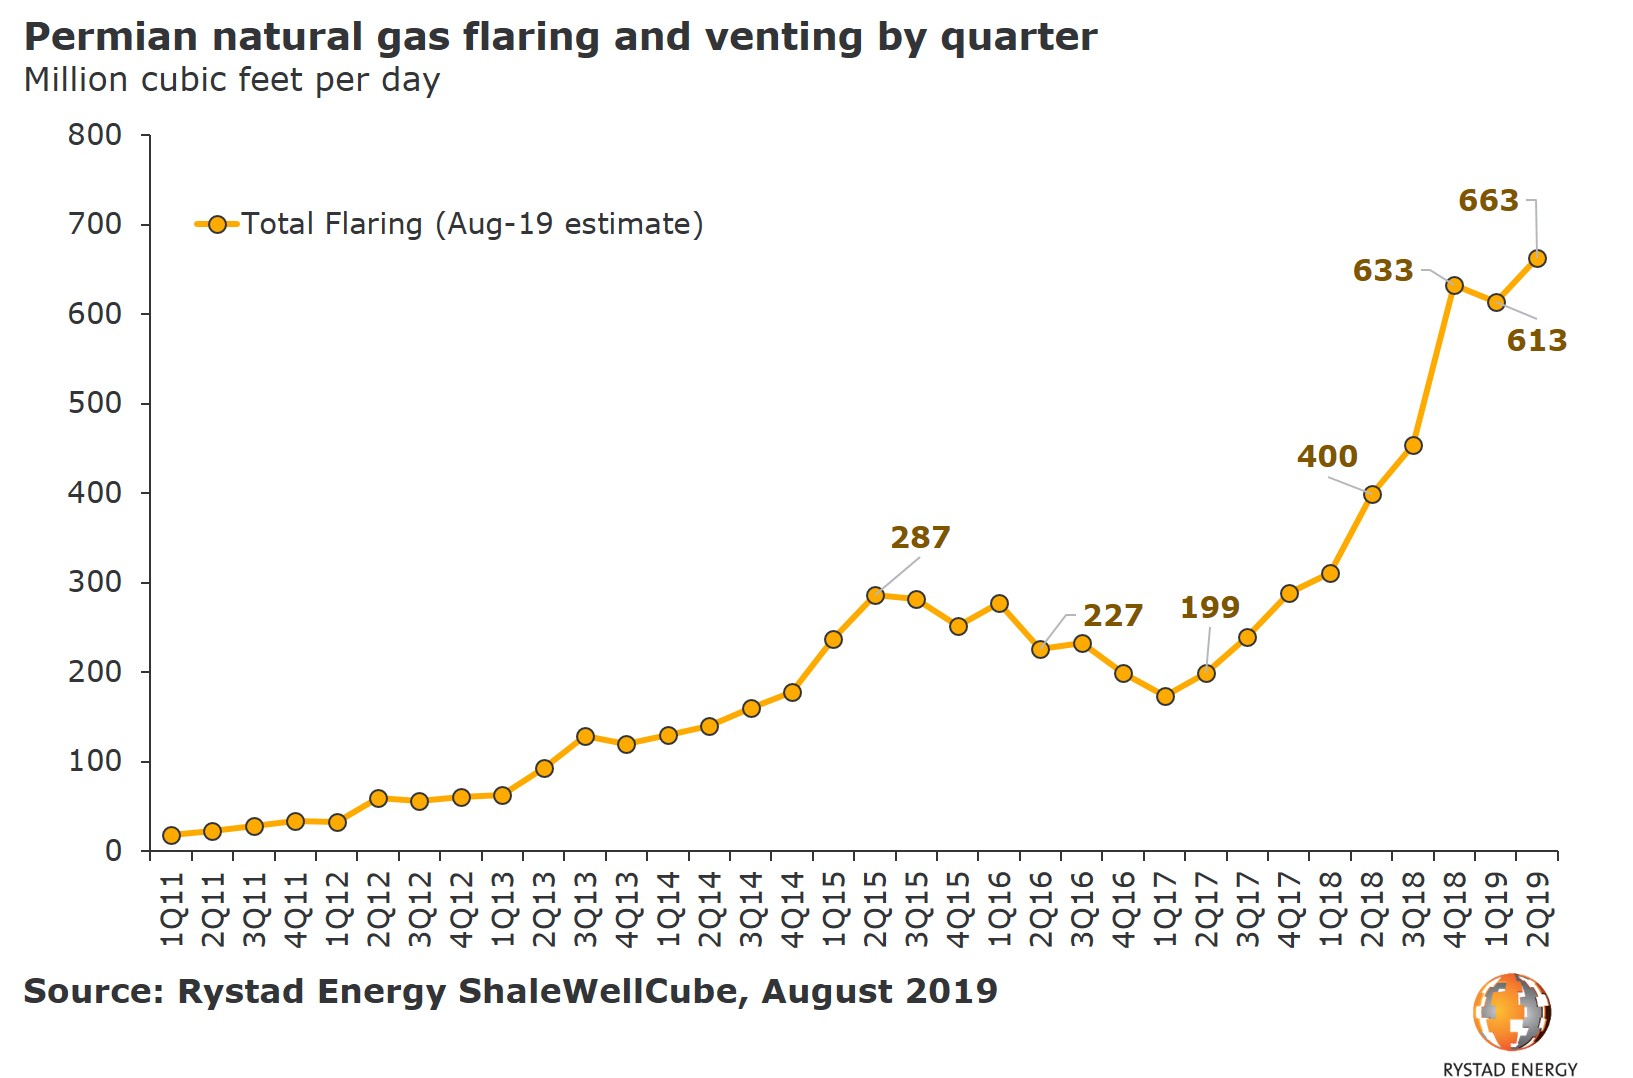 Permian natural gas flaring and venting by quarter Rystad Energy